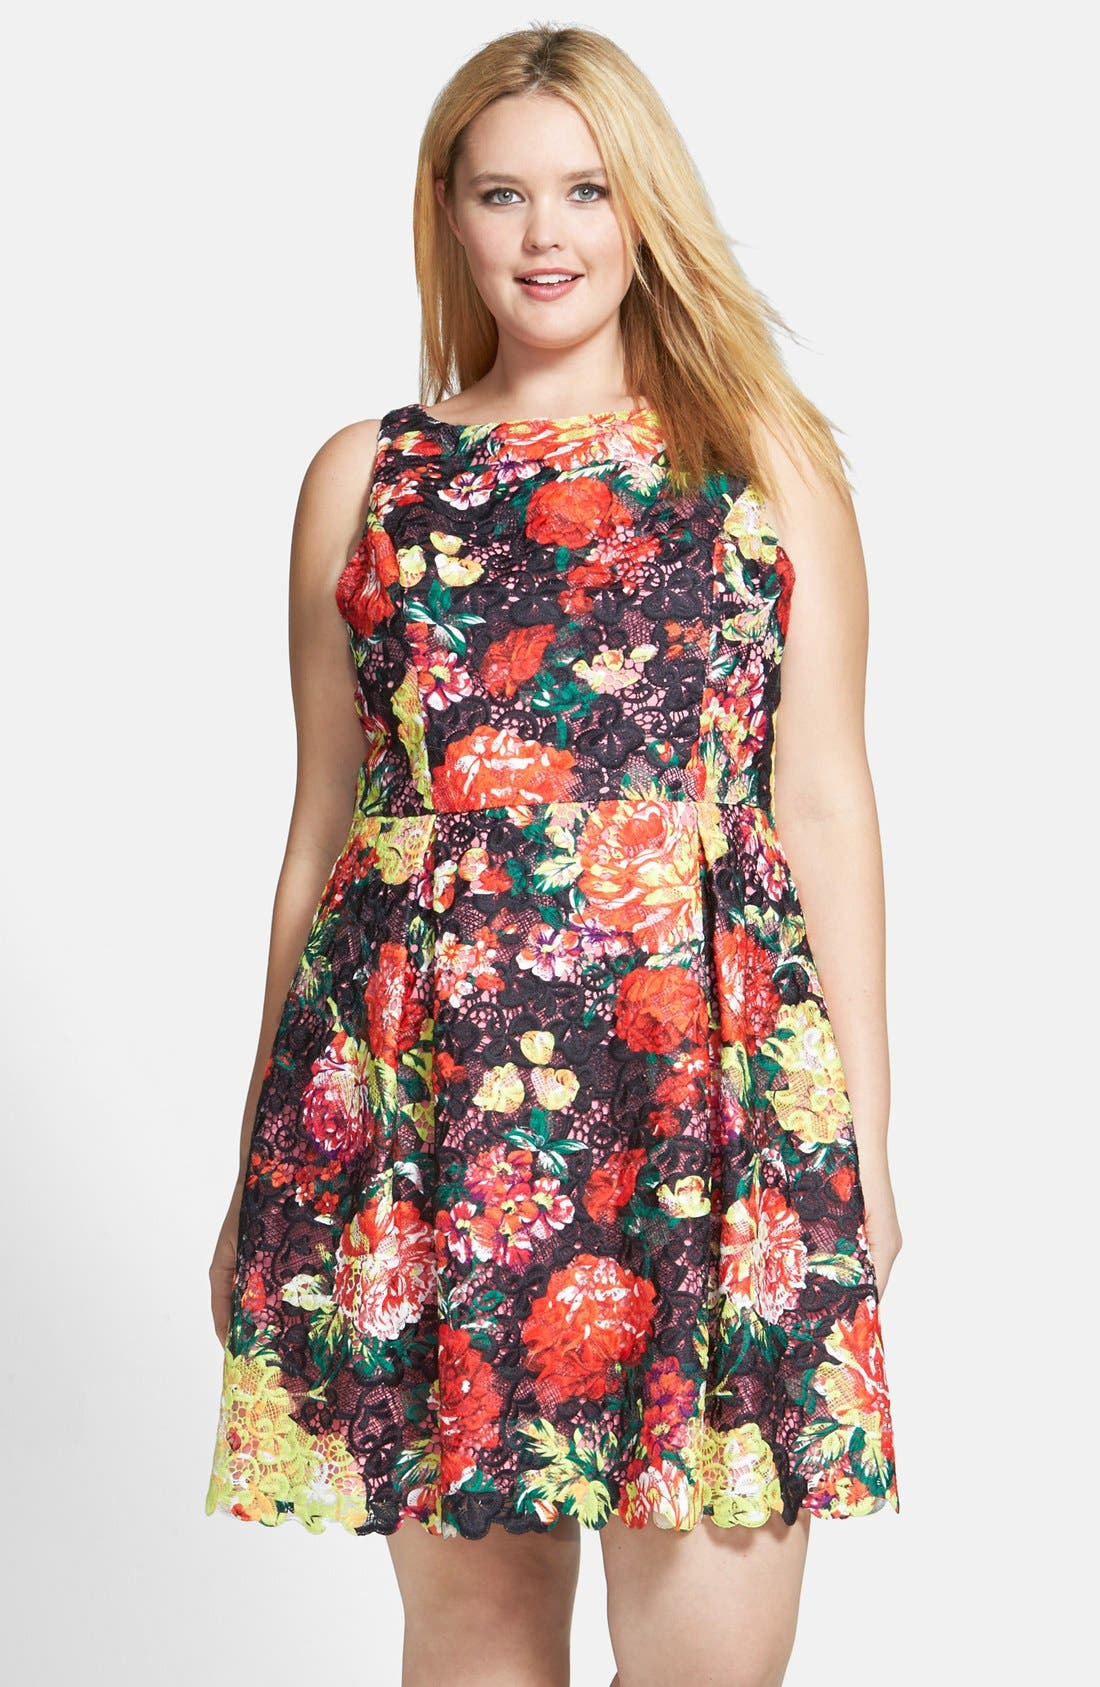 Alternate Image 1 Selected - Adrianna Papell Print Lace Fit & Flare Dress (Plus Size)